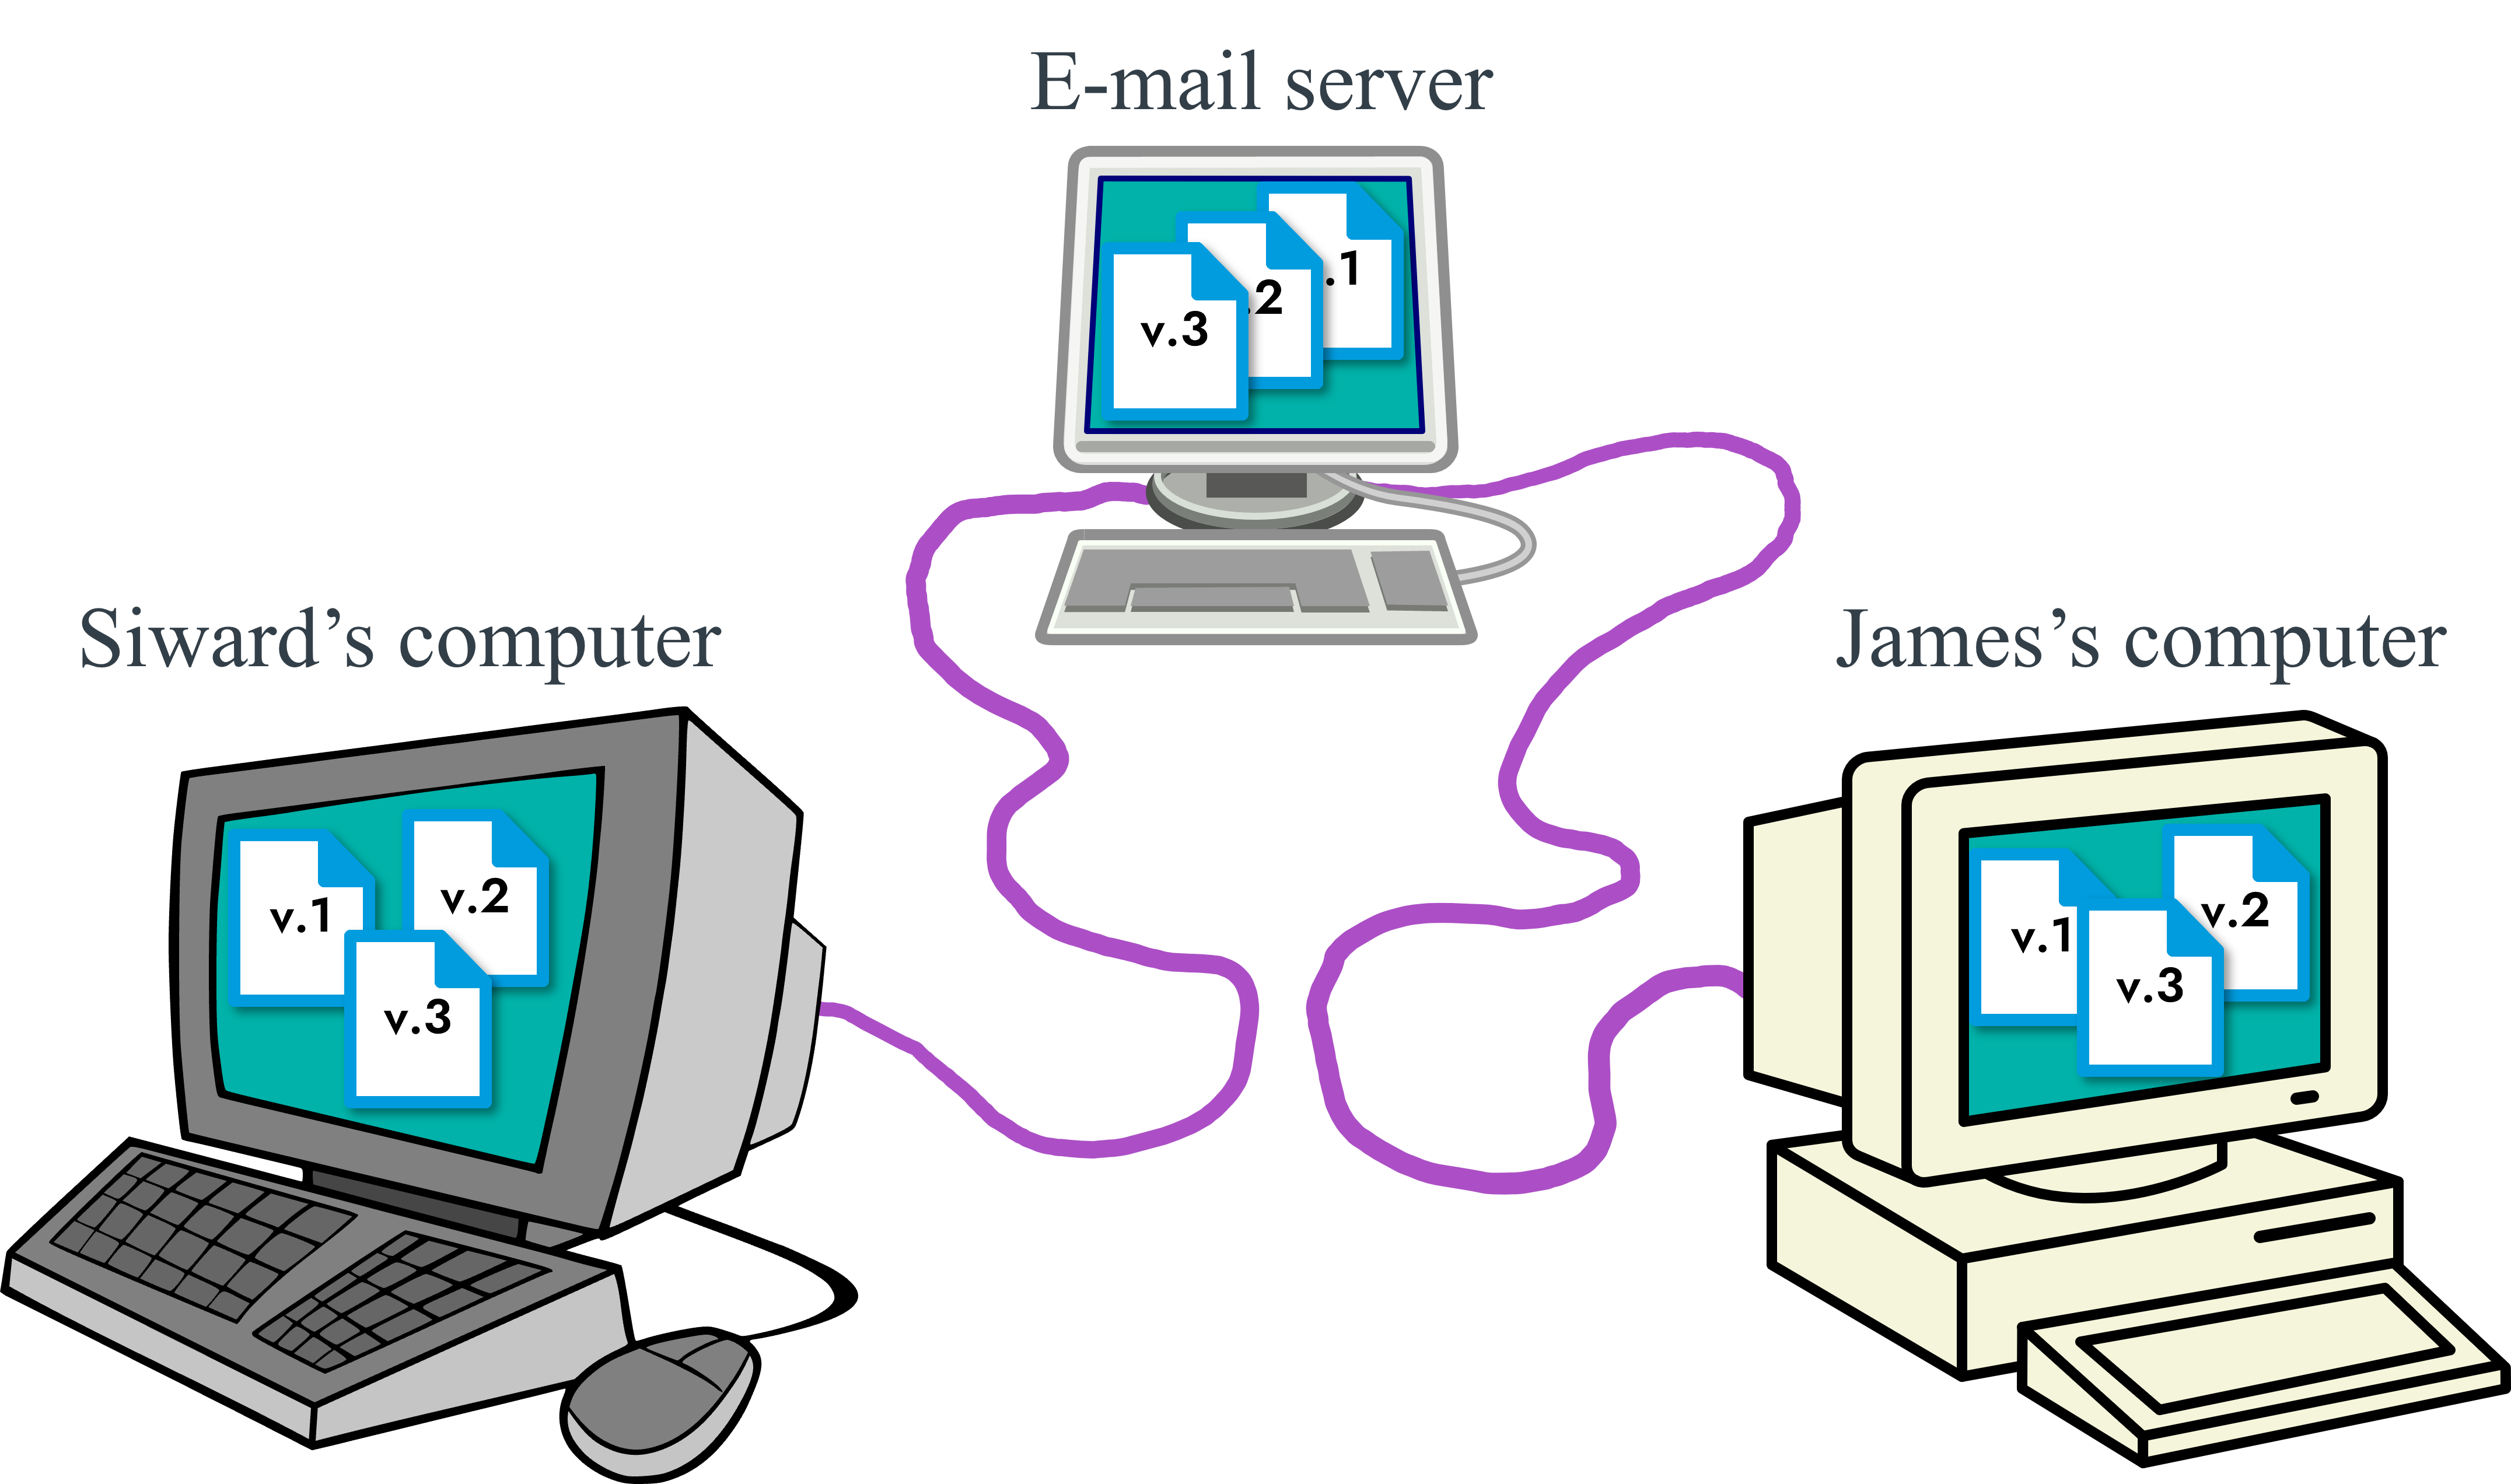 Siward's PC is joined to the email server by a wire. The email server is joined to James's PC by a wire. All three PCs have three versions of the same file on their hard drive.